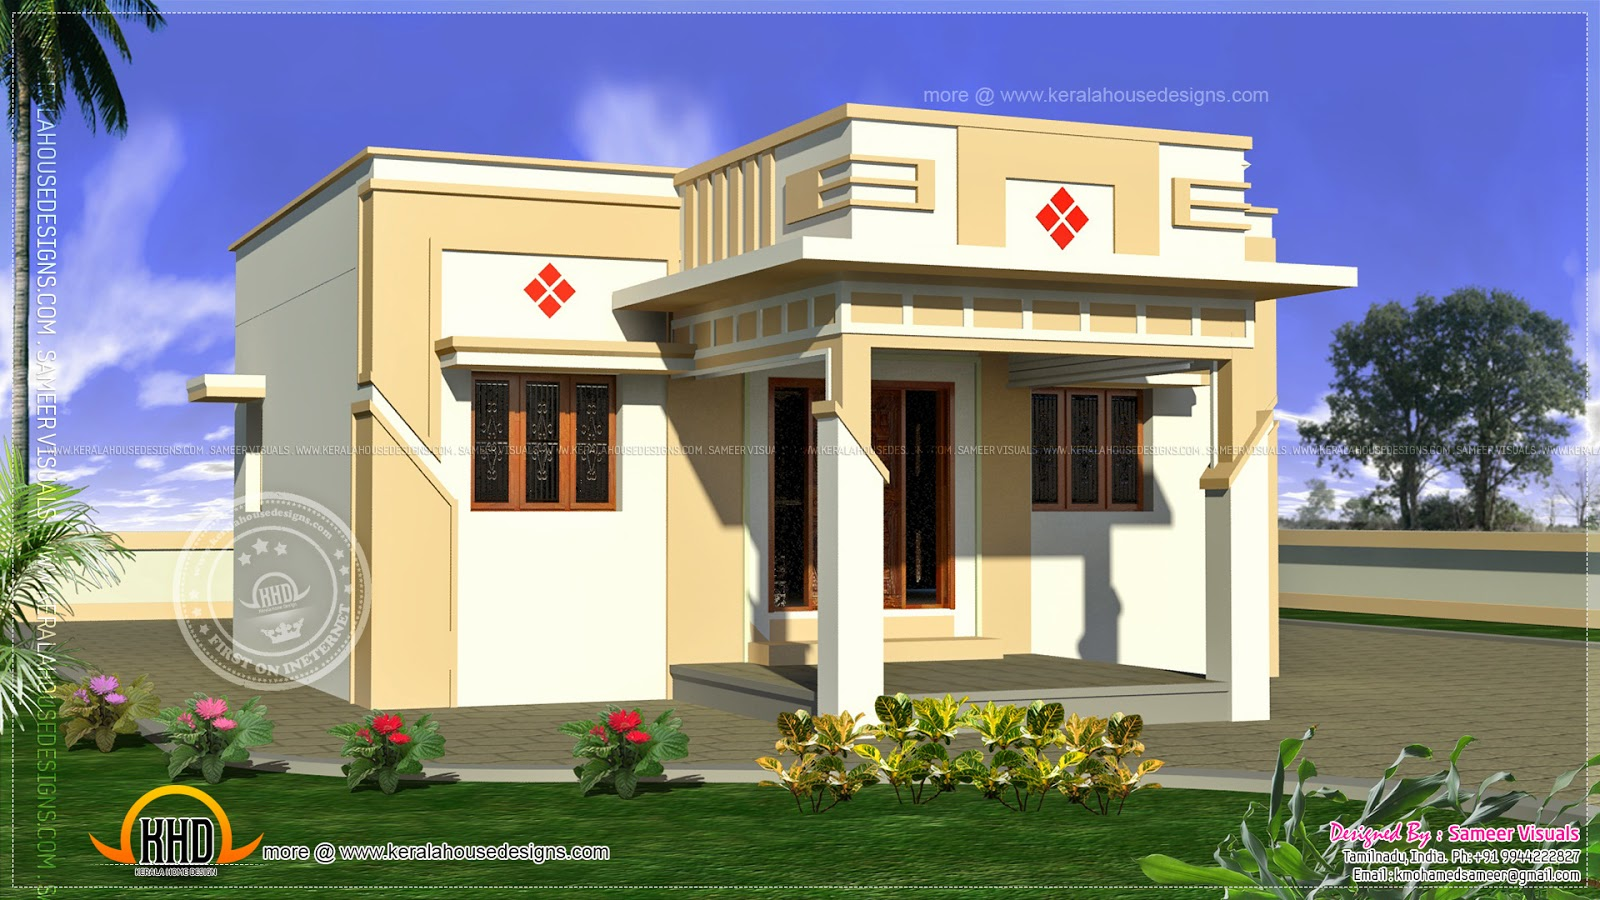 Low cost tamilnadu house kerala home design and floor plans for Free house plans and designs with cost to build